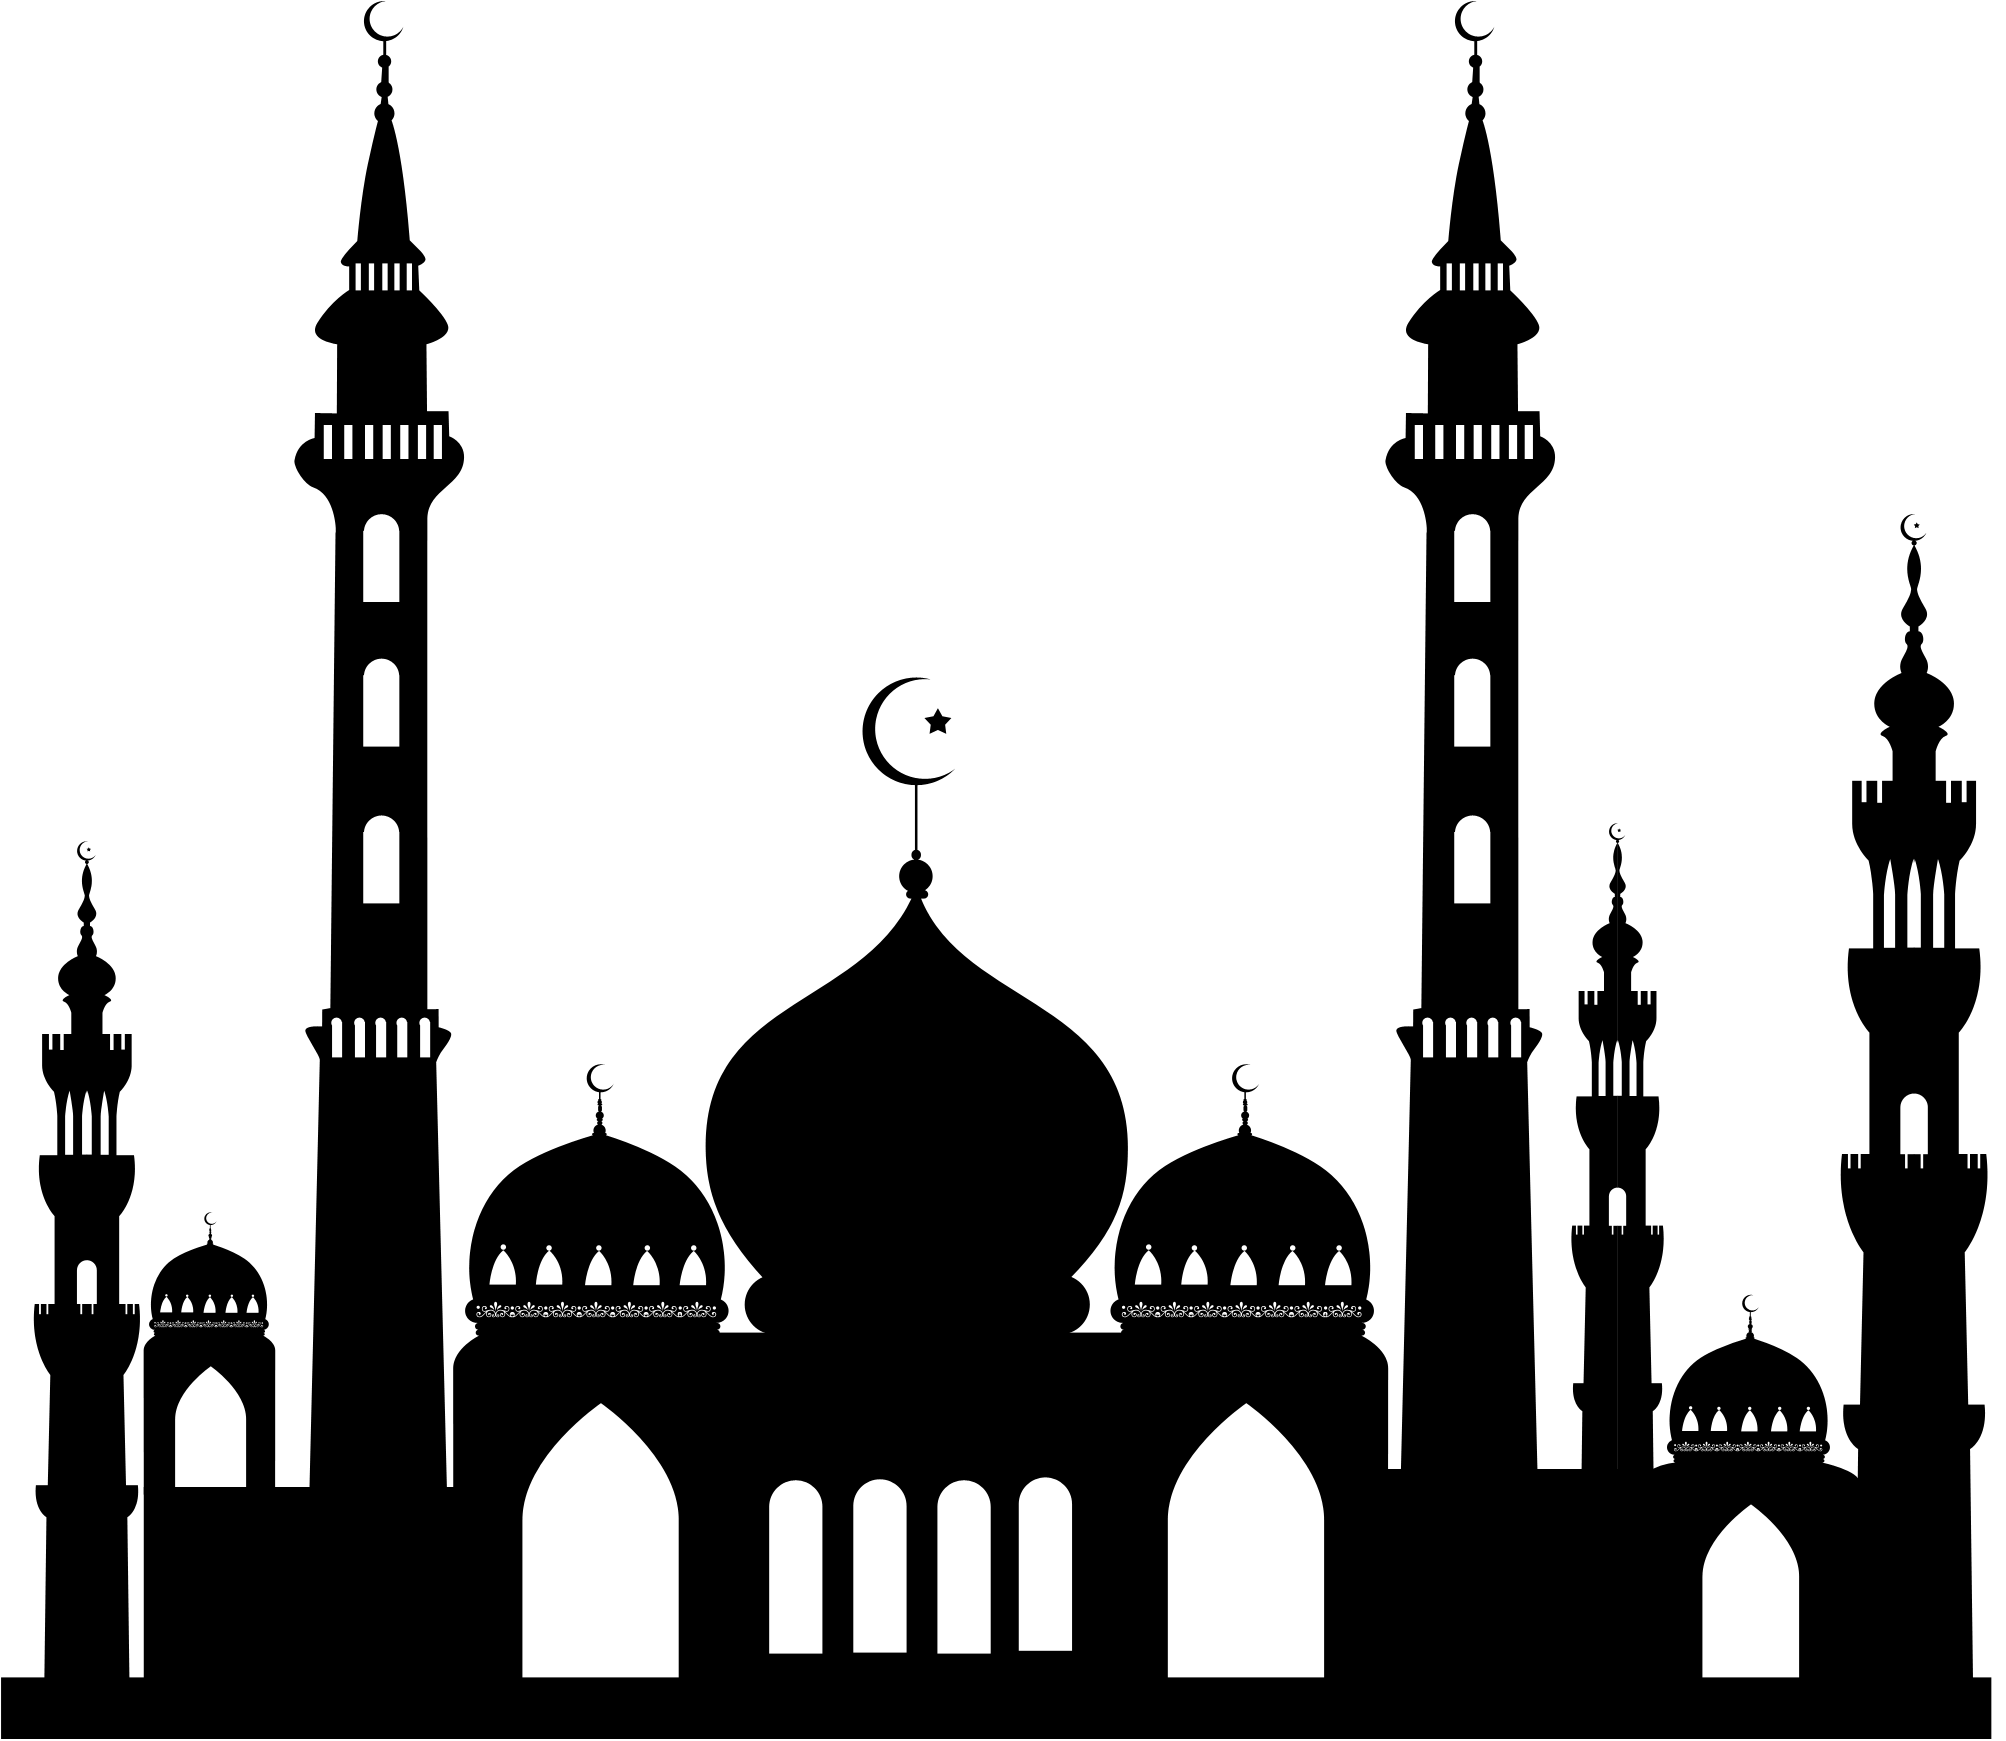 mosque clipart kubah mosque kubah transparent free for download on webstockreview 2020 mosque clipart kubah mosque kubah